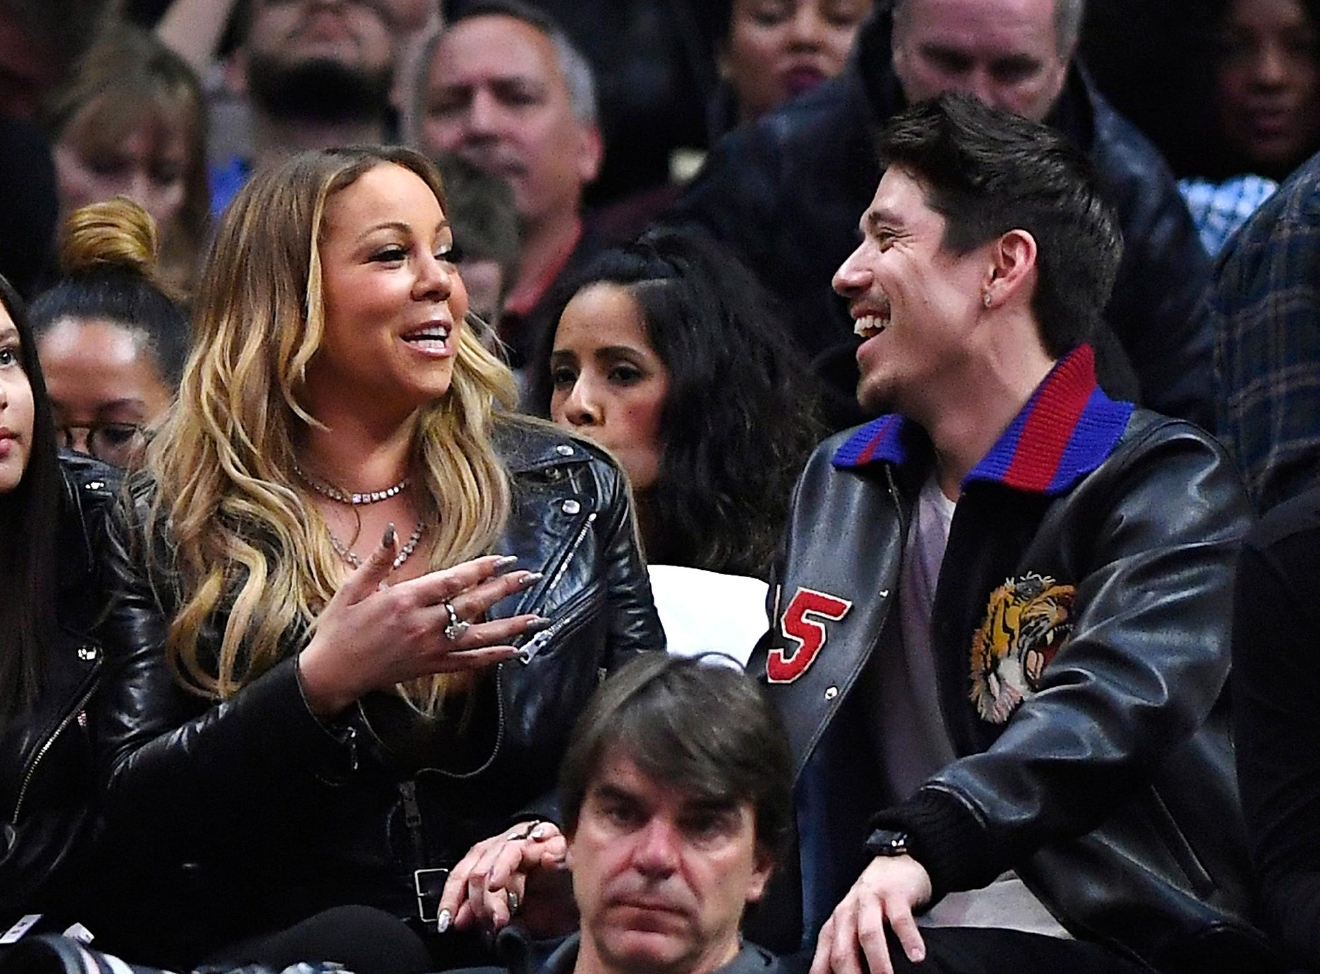 Singer Mariah Carey, left, talks with Bryan Tanaka during the second half of an NBA basketball game between the Los Angeles Clippers and the Atlanta Hawks, Wednesday, Feb. 15, 2017, in Los Angeles. The Clippers won 99-84. (AP Photo/Mark J. Terrill)